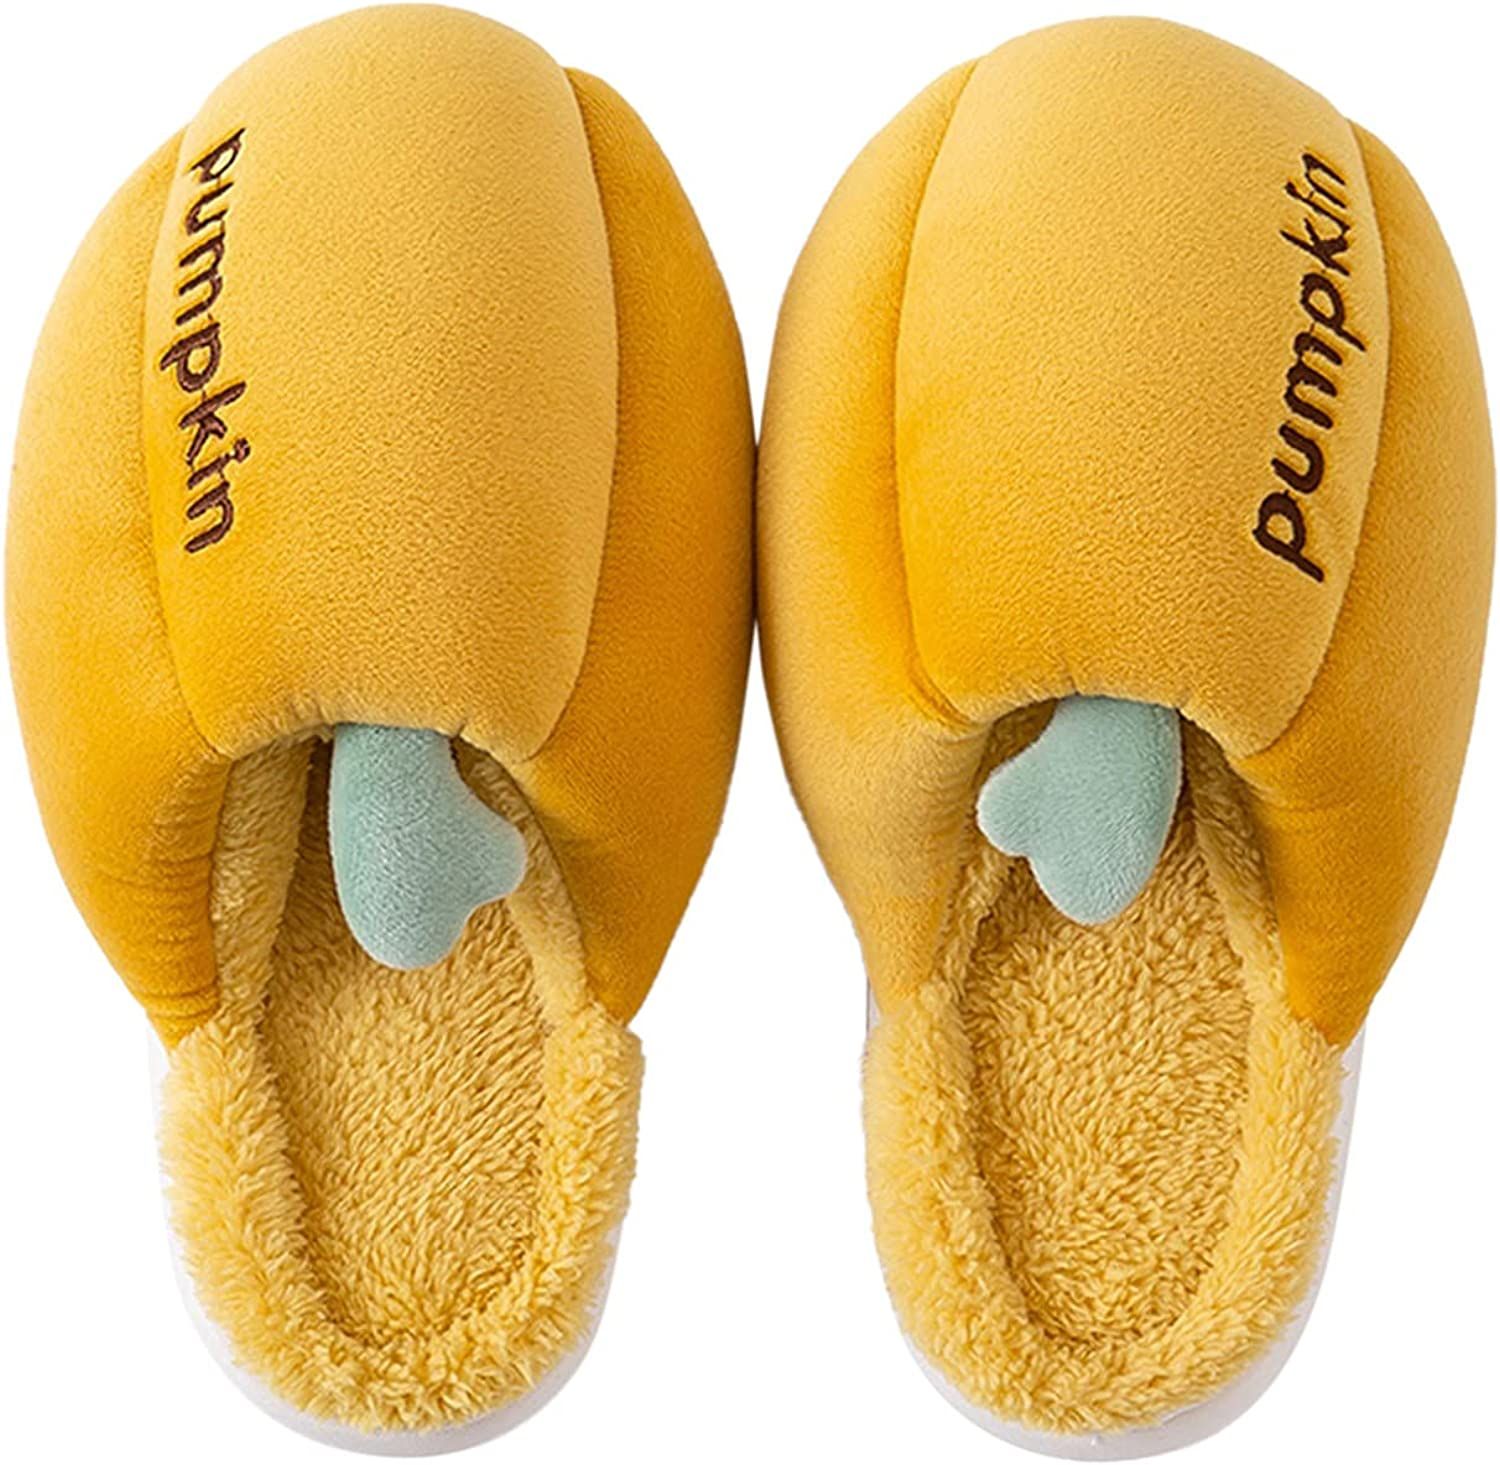 Max 79% OFF Hunauoo Tucson Mall Slippers for Women Soft House Plush Warm Slippe